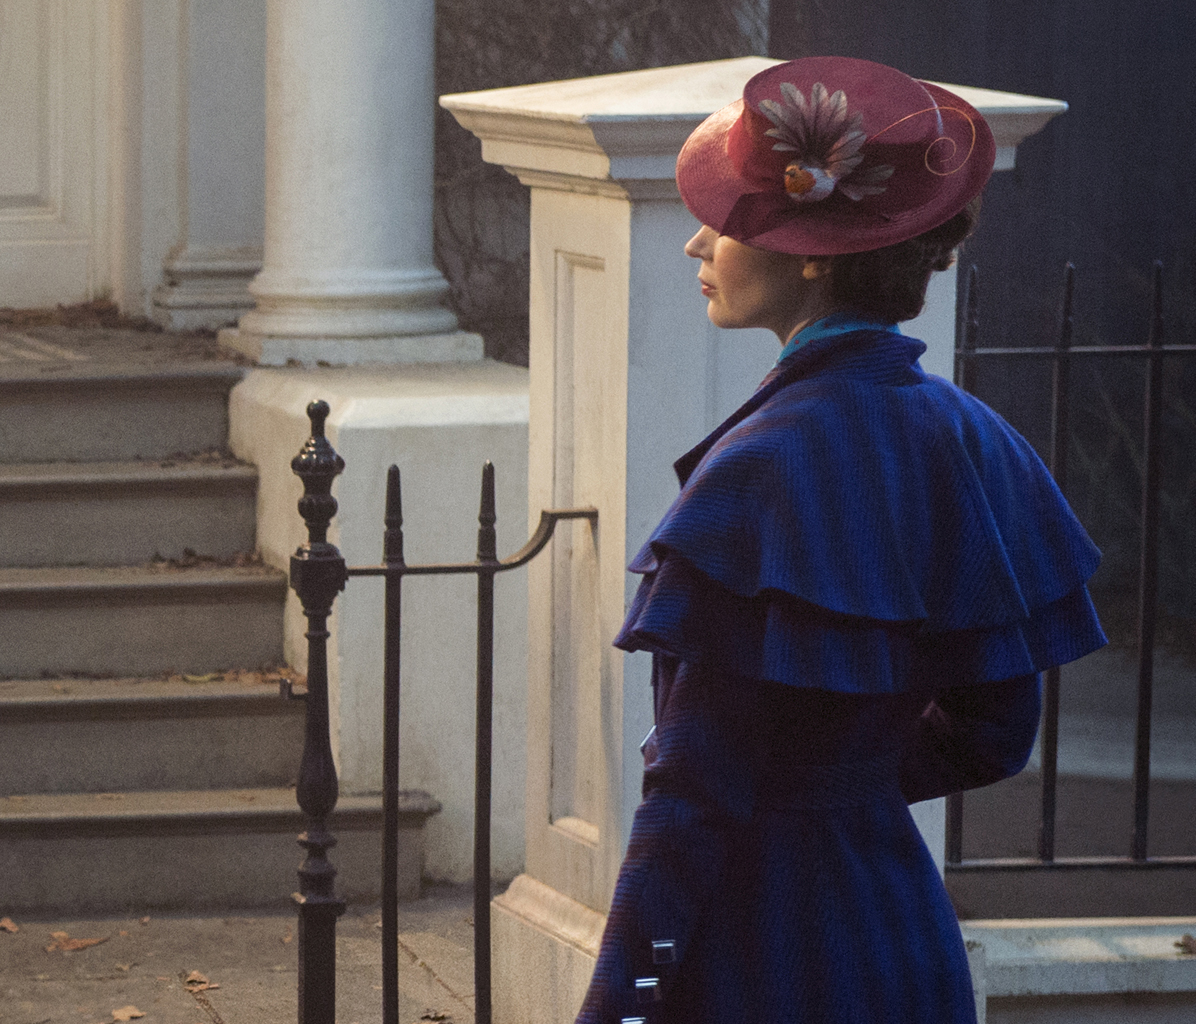 Emily Blunt pictured in the first image from the set of the movie Mary Poppins Returns.